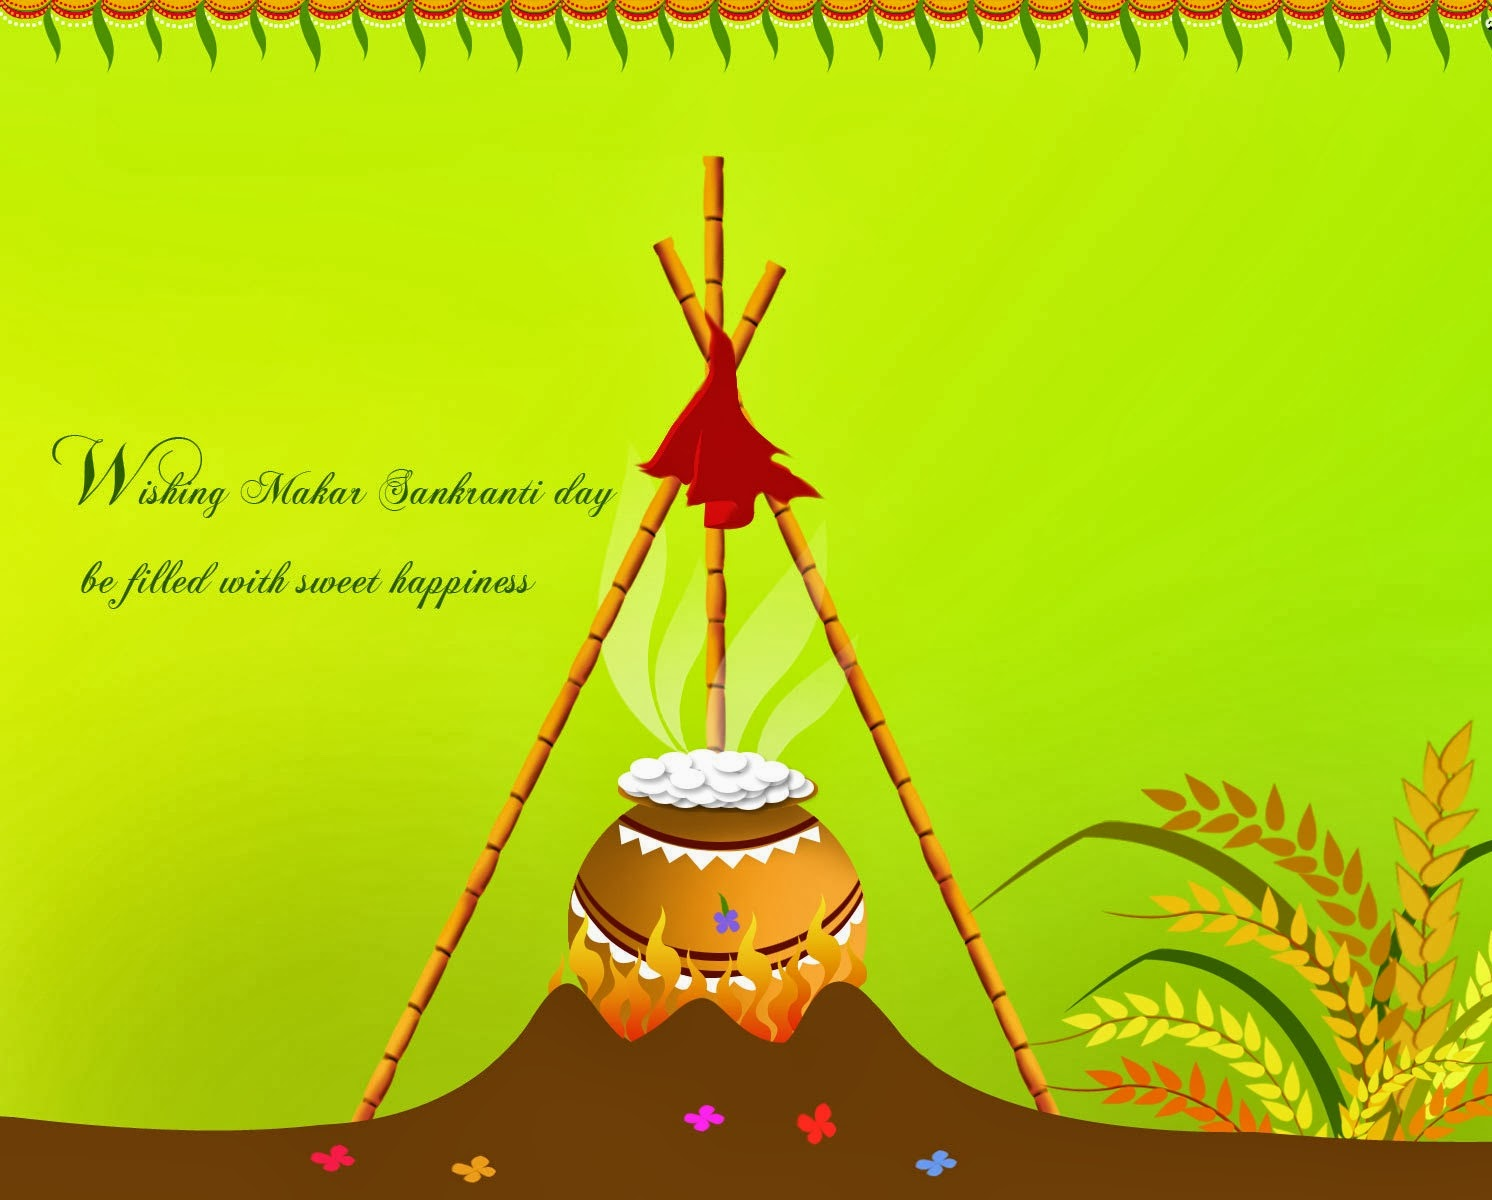 makar sankranti hd images - photo #13